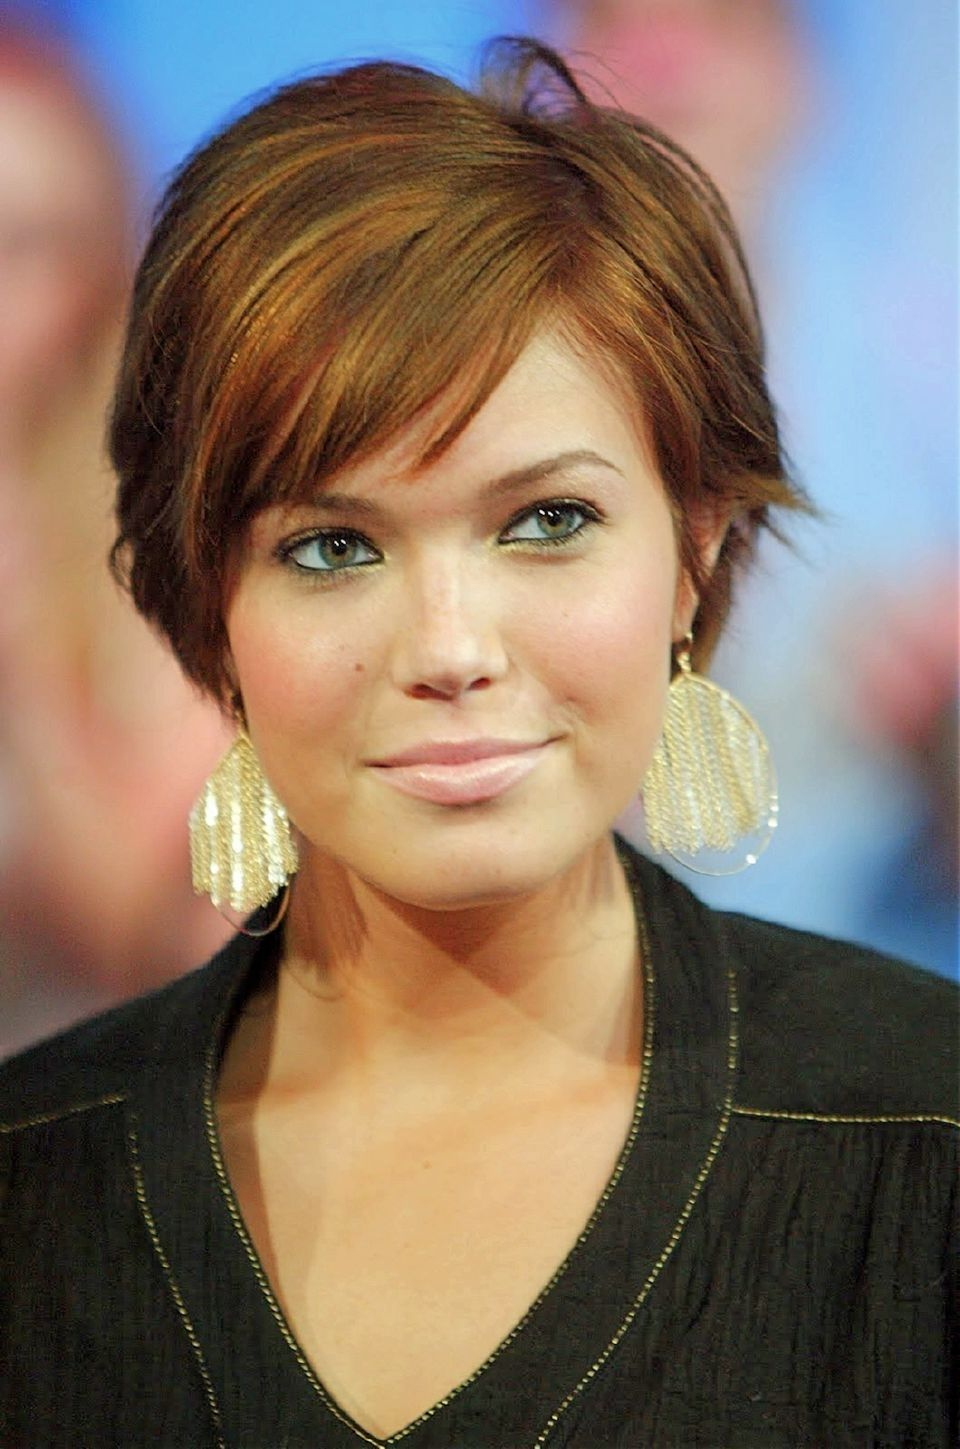 Double chins short hairstyles for round faces with double